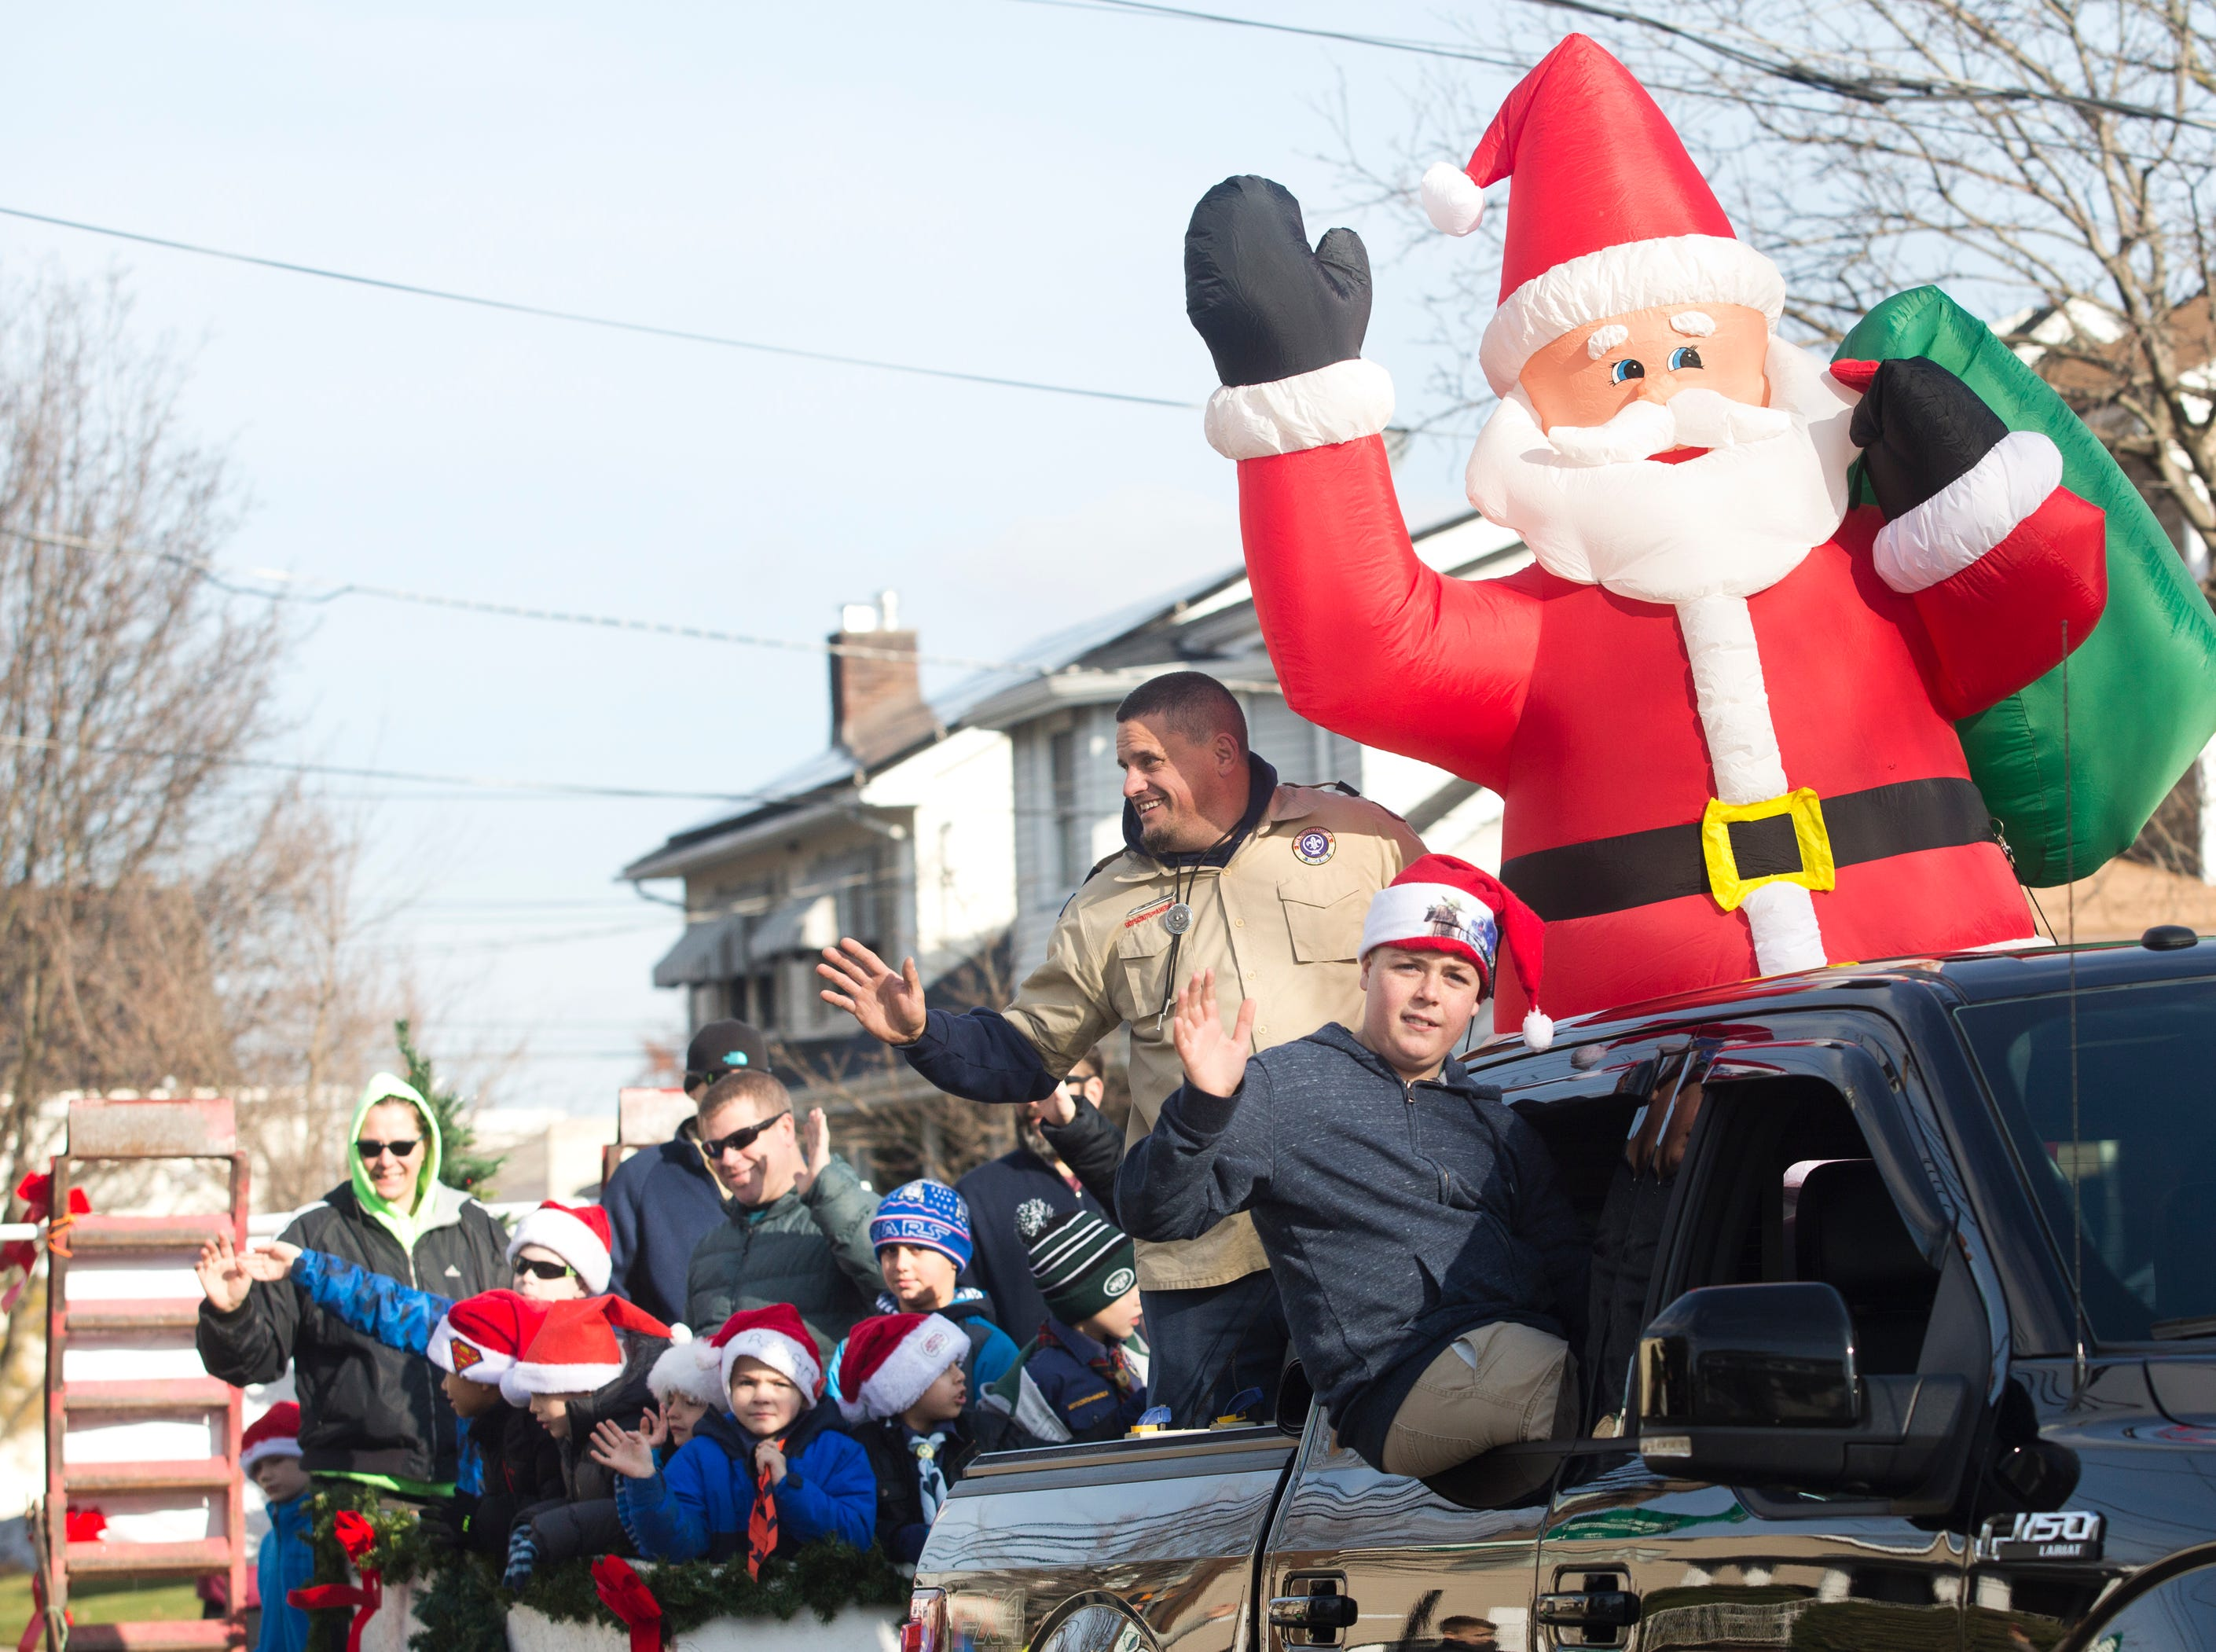 St. Anthony's Cub Scout Pack of Hawthorne wave from their float during the 33rd Annual Santa Parade in Hawthorne on Saturday, Dec. 1, 2018.